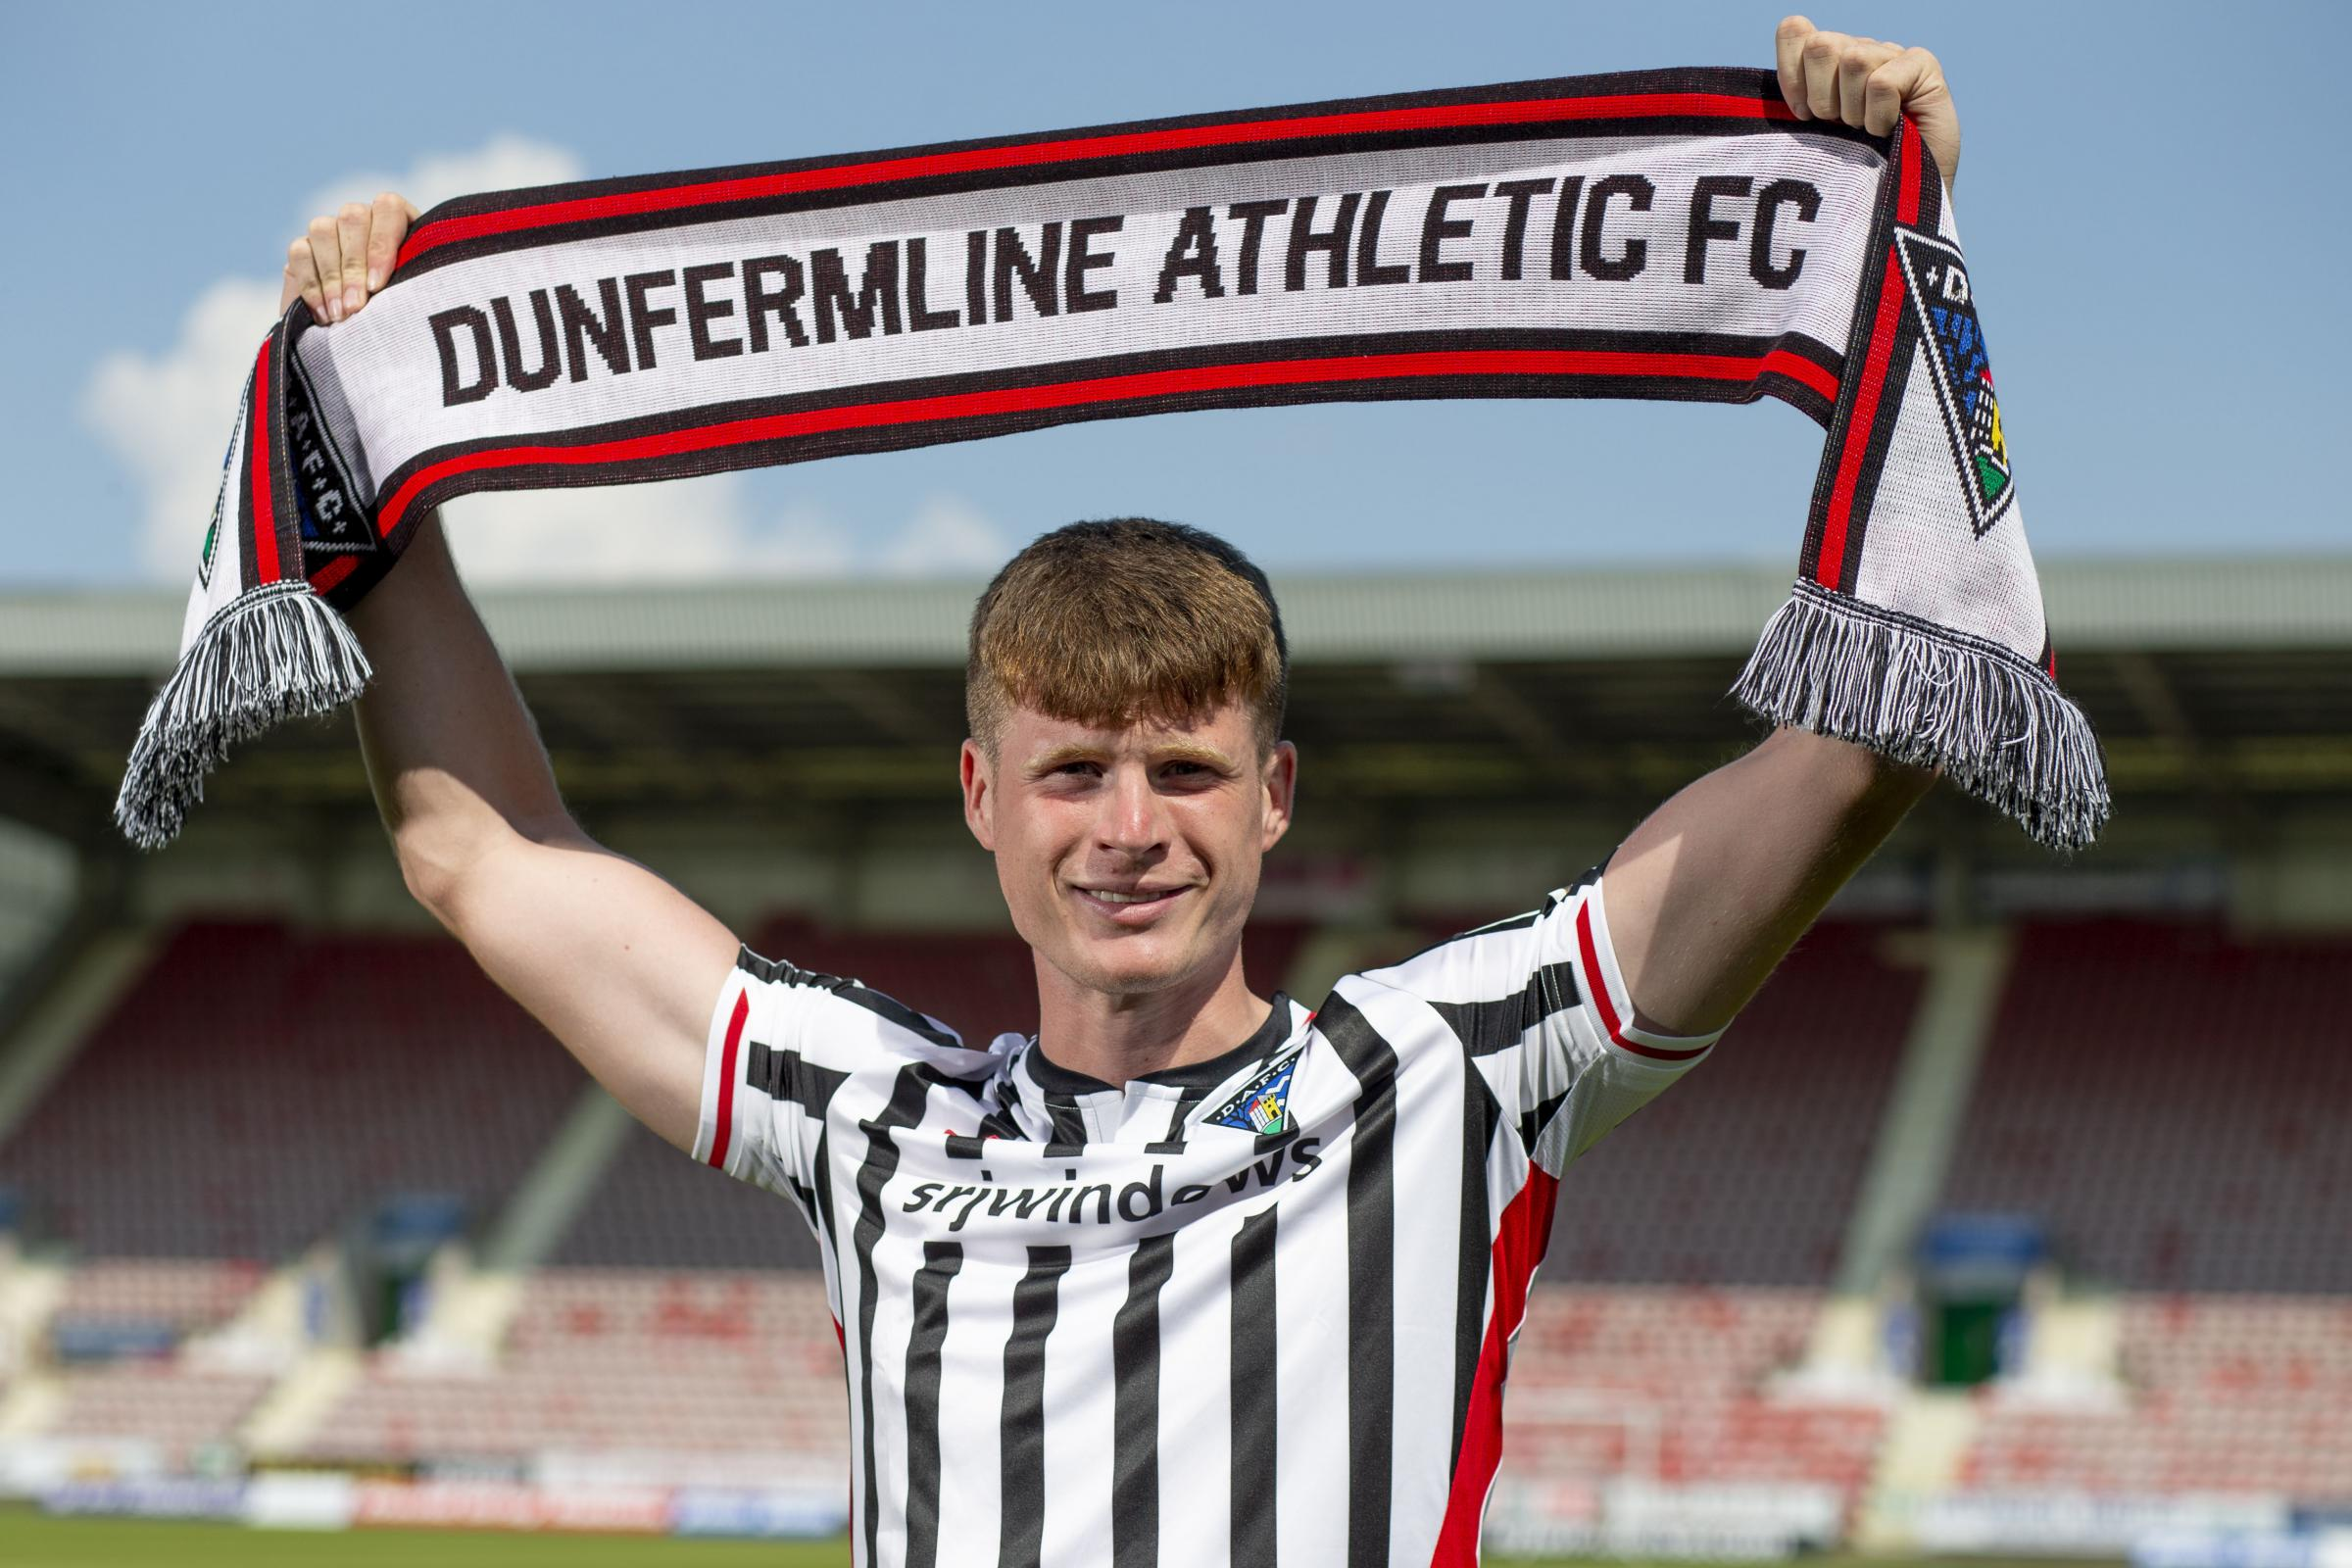 Dunfermline: Rhys Breen signs after leaving Rangers